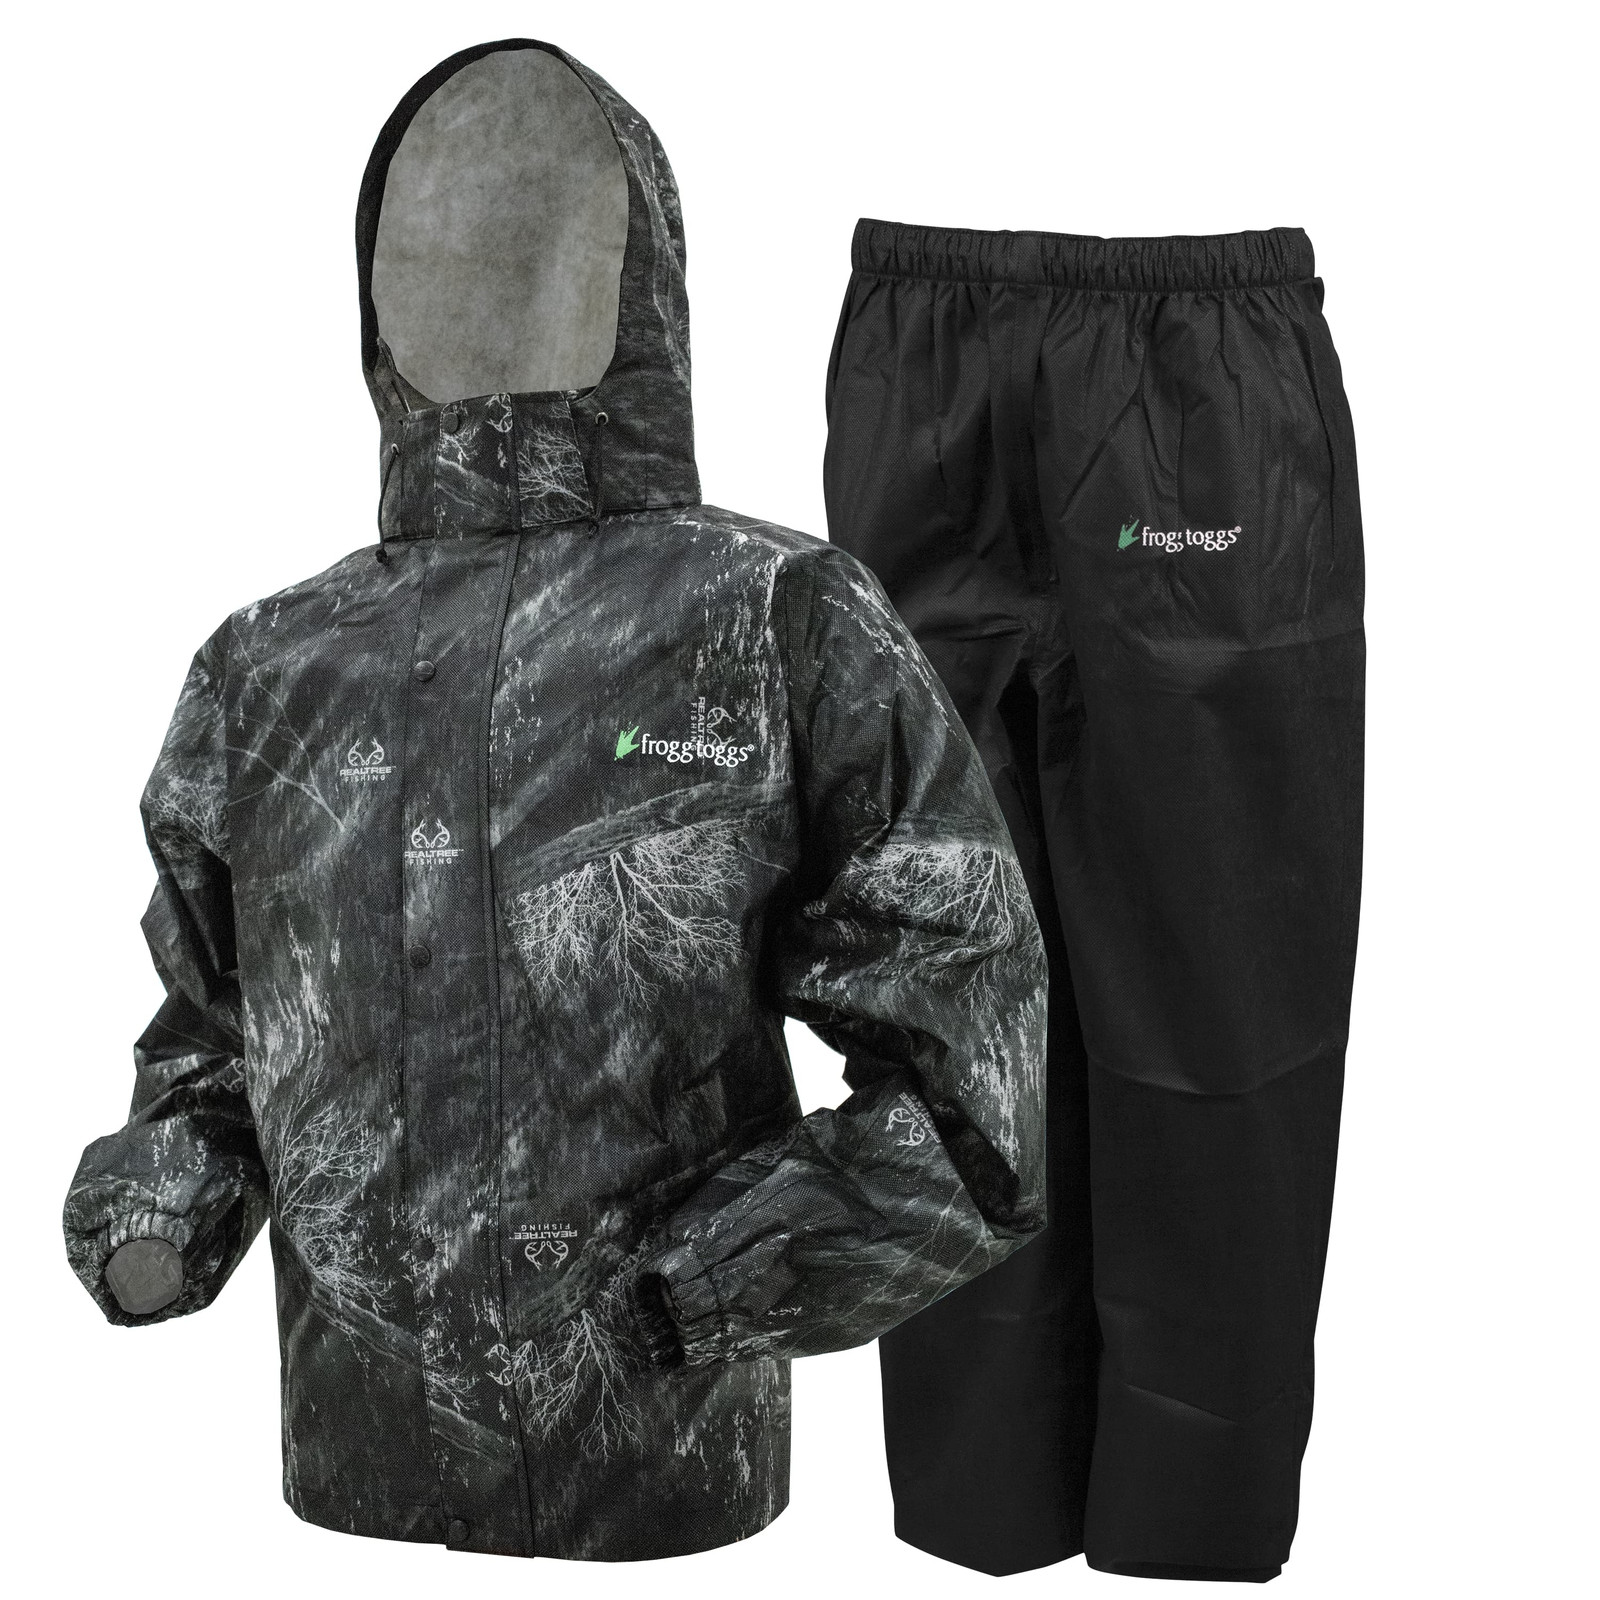 All Sport Suit Realtree Fishing Bla-large